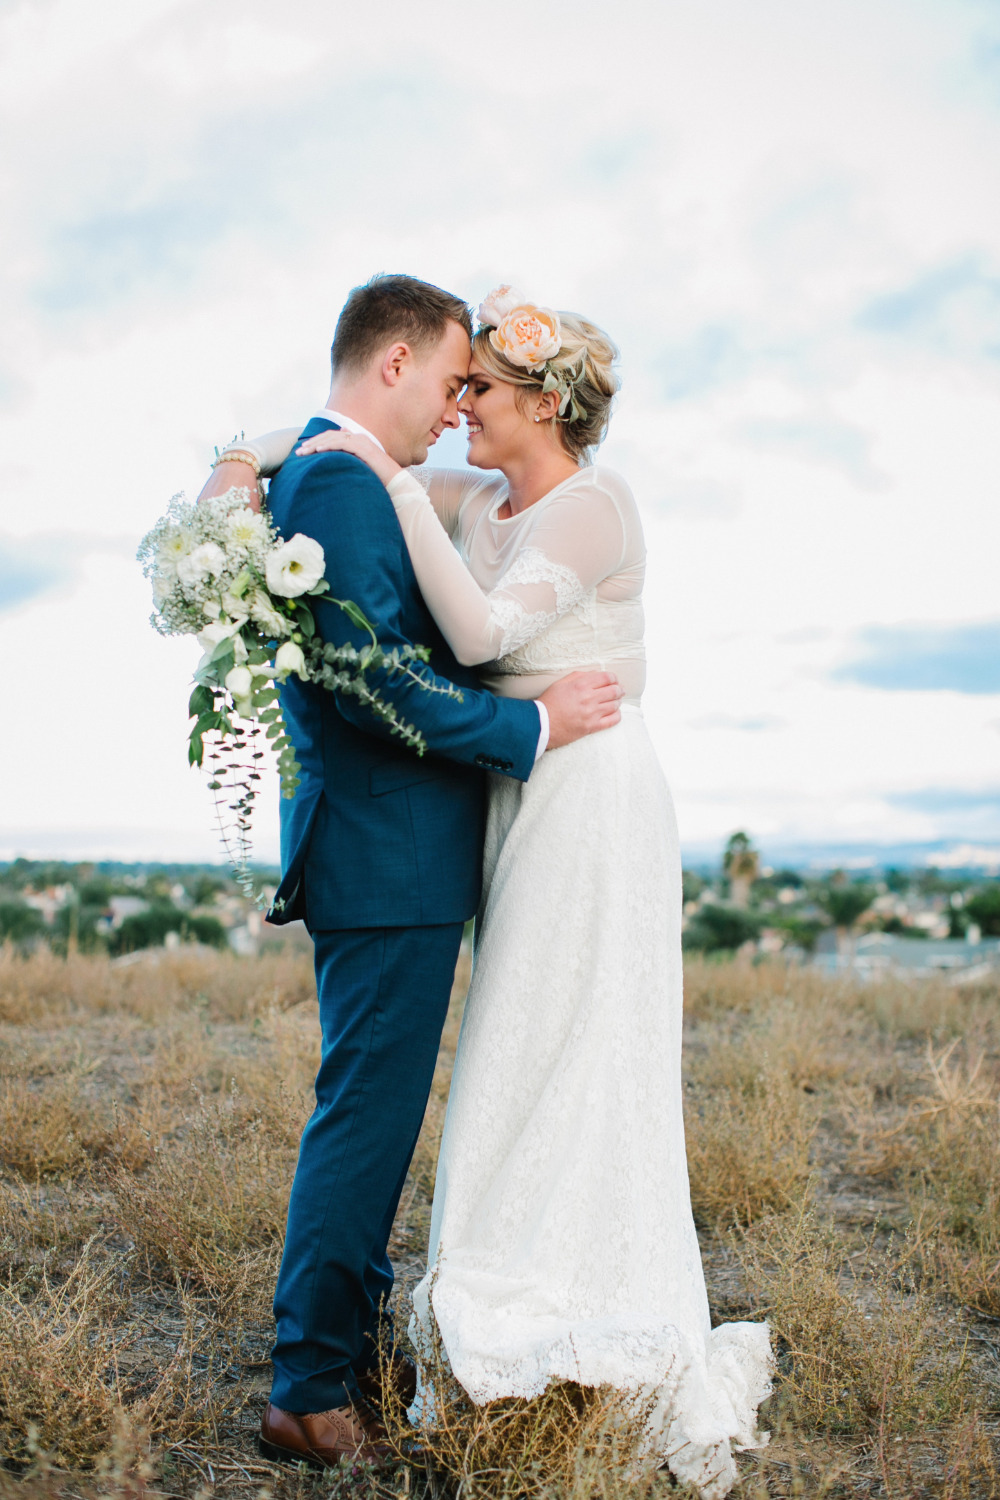 sweet special wedding photography moment